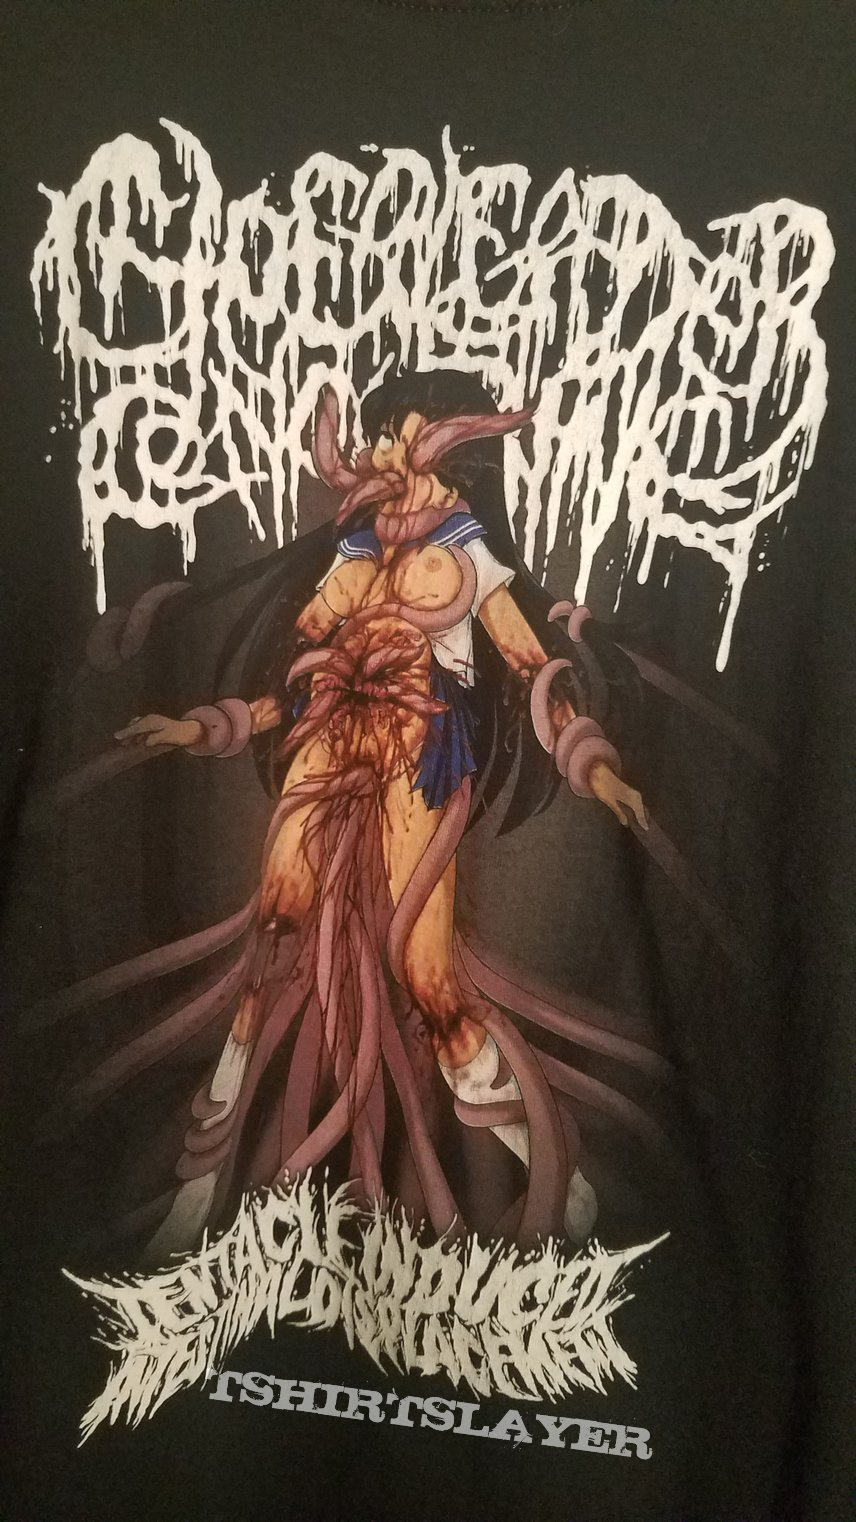 Tentacle Induced Intestinal Displacement Cheerleader Concubine Shirt